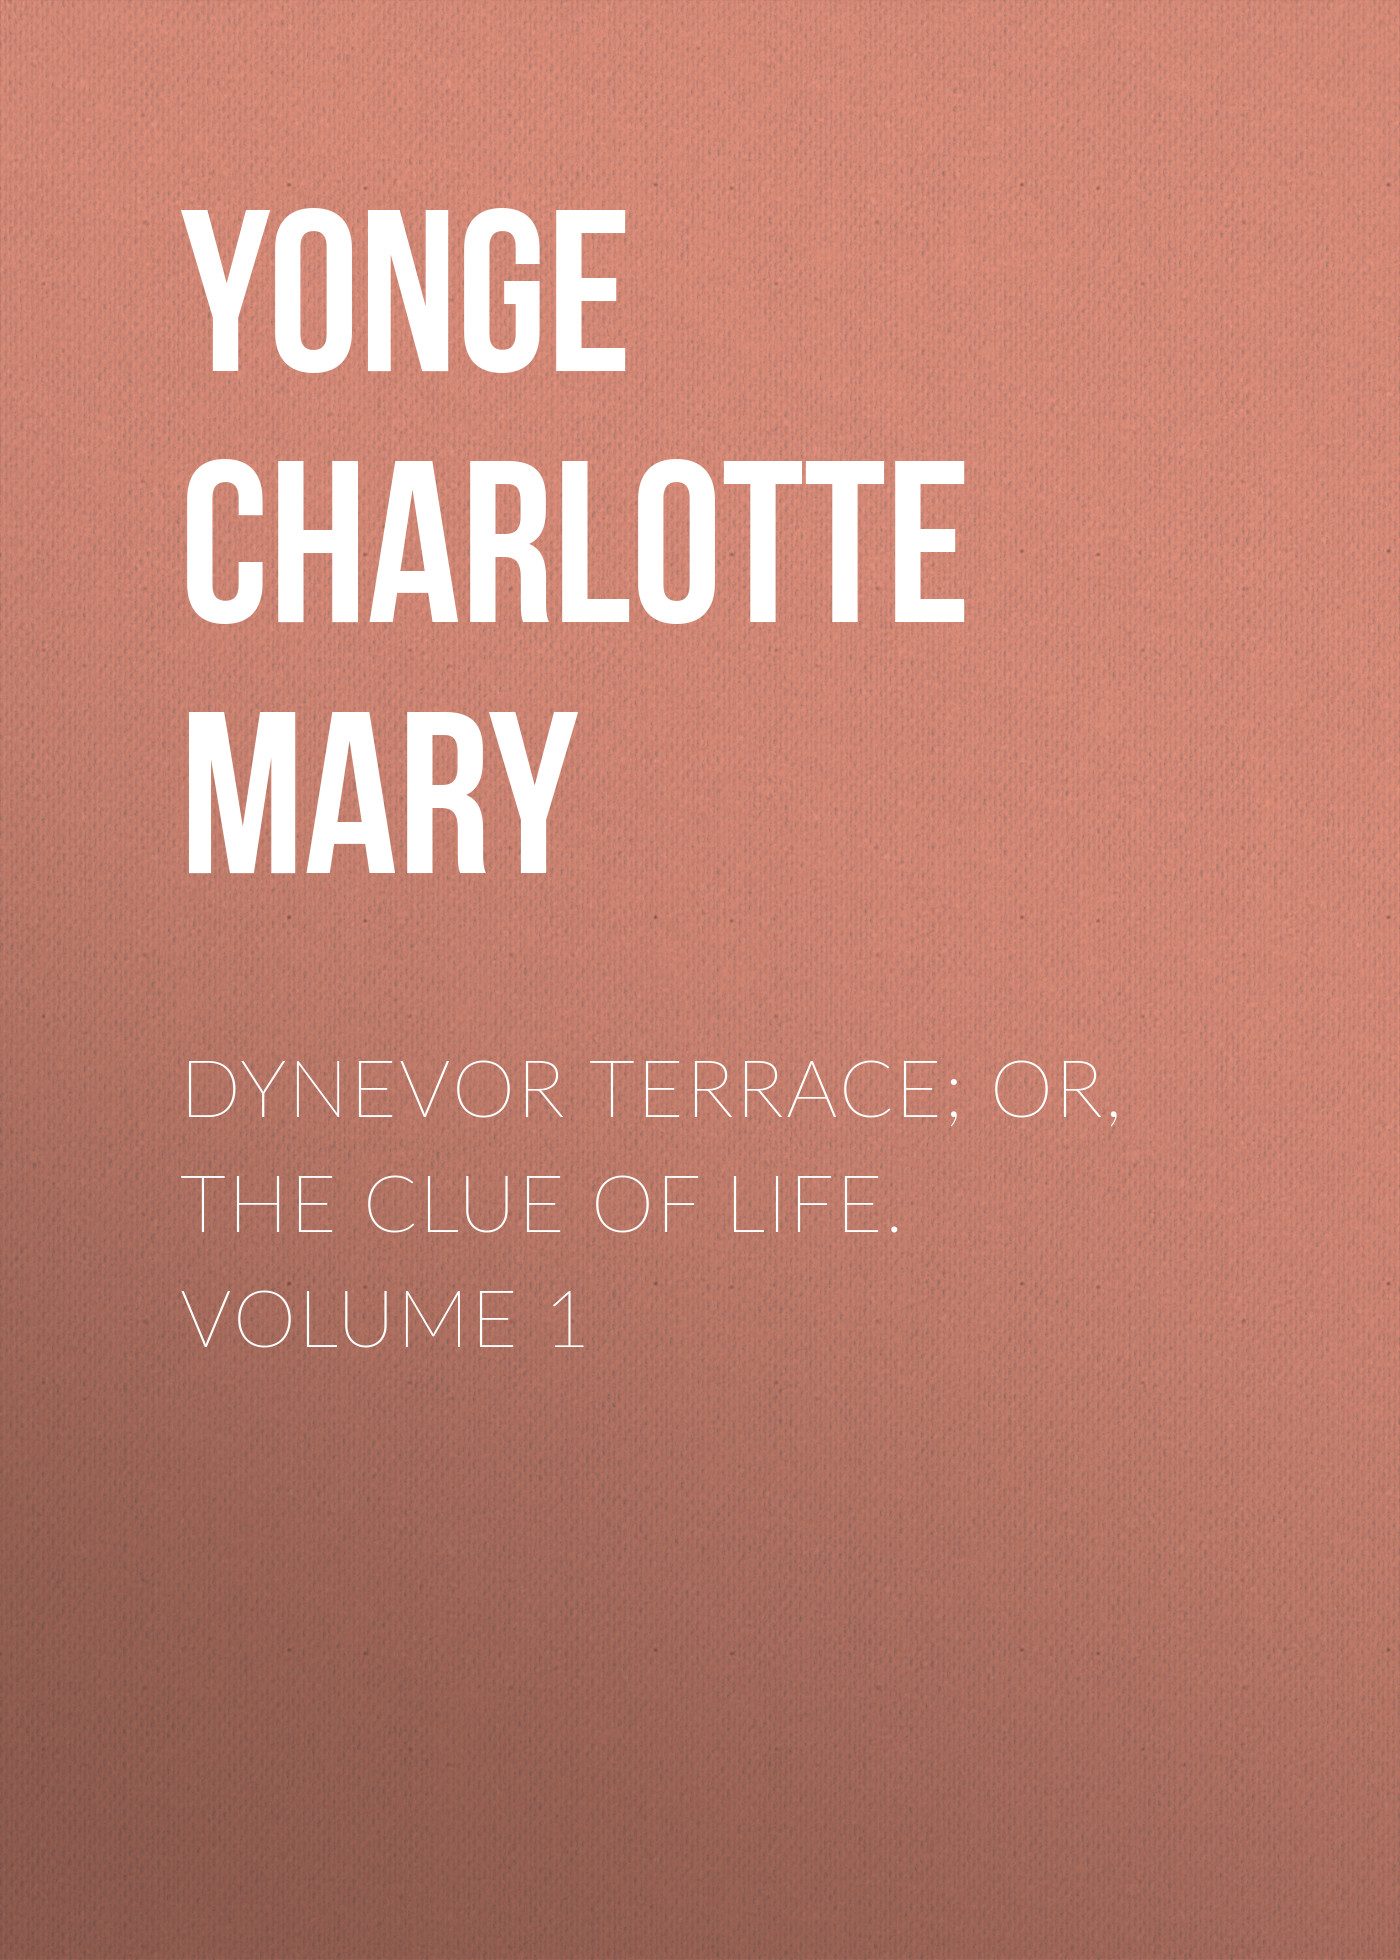 Yonge Charlotte Mary Dynevor Terrace; Or, The Clue of Life. Volume 1 scott w life of napoleon volume 1